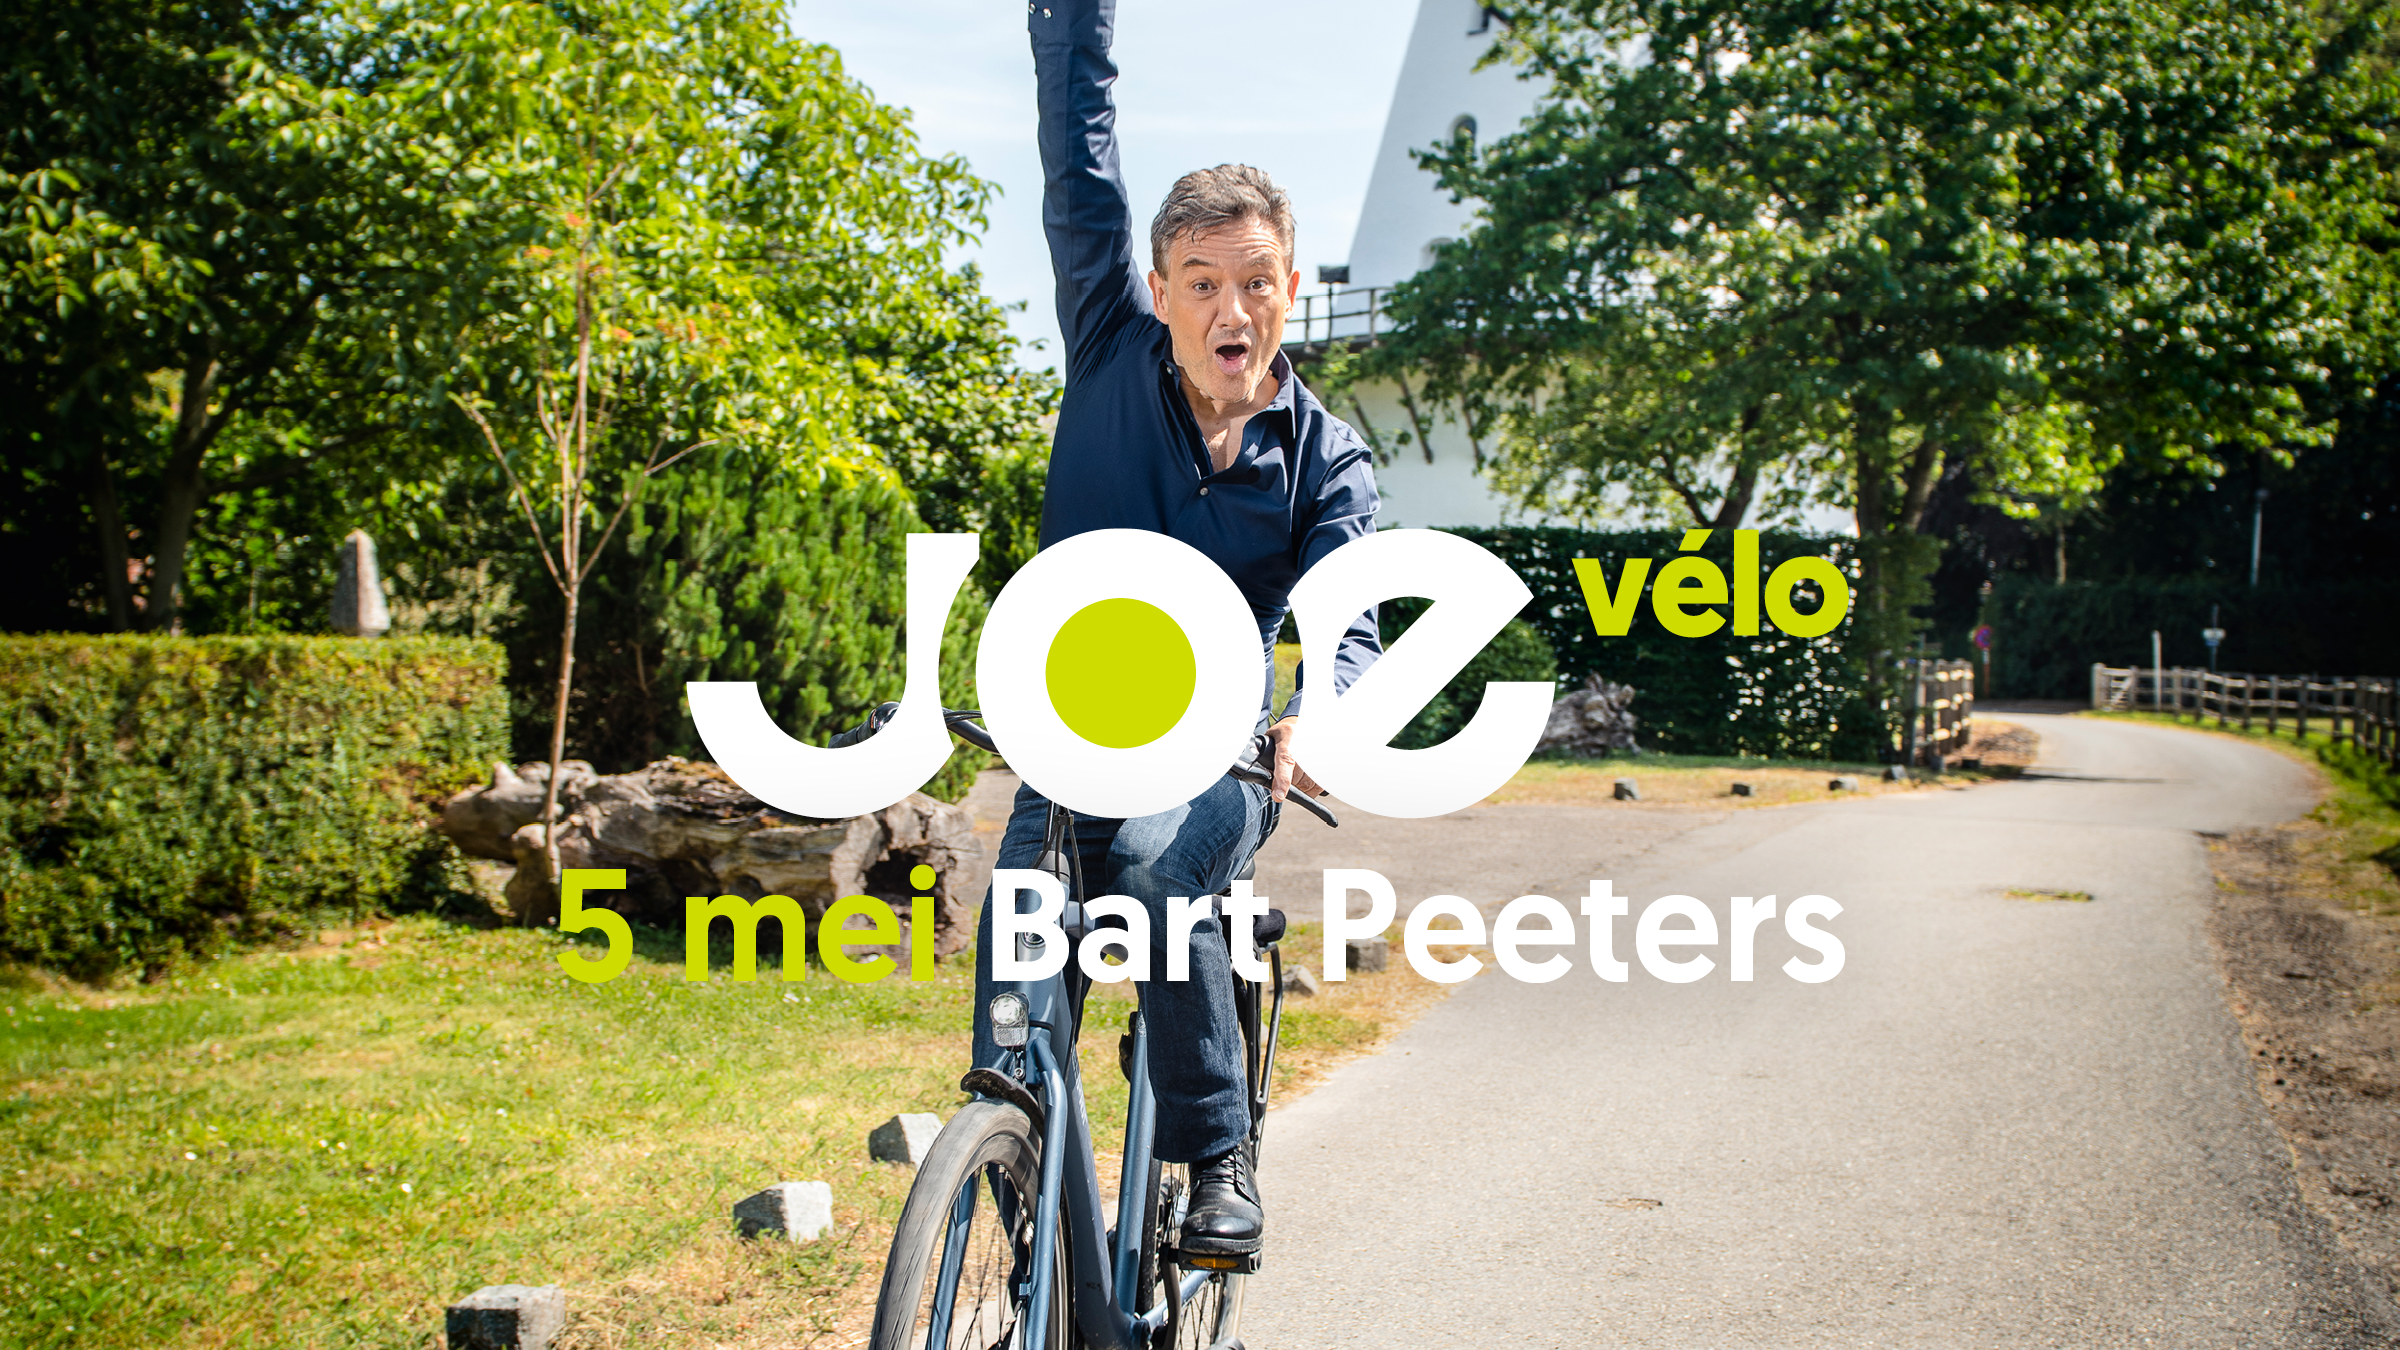 Joe velo website